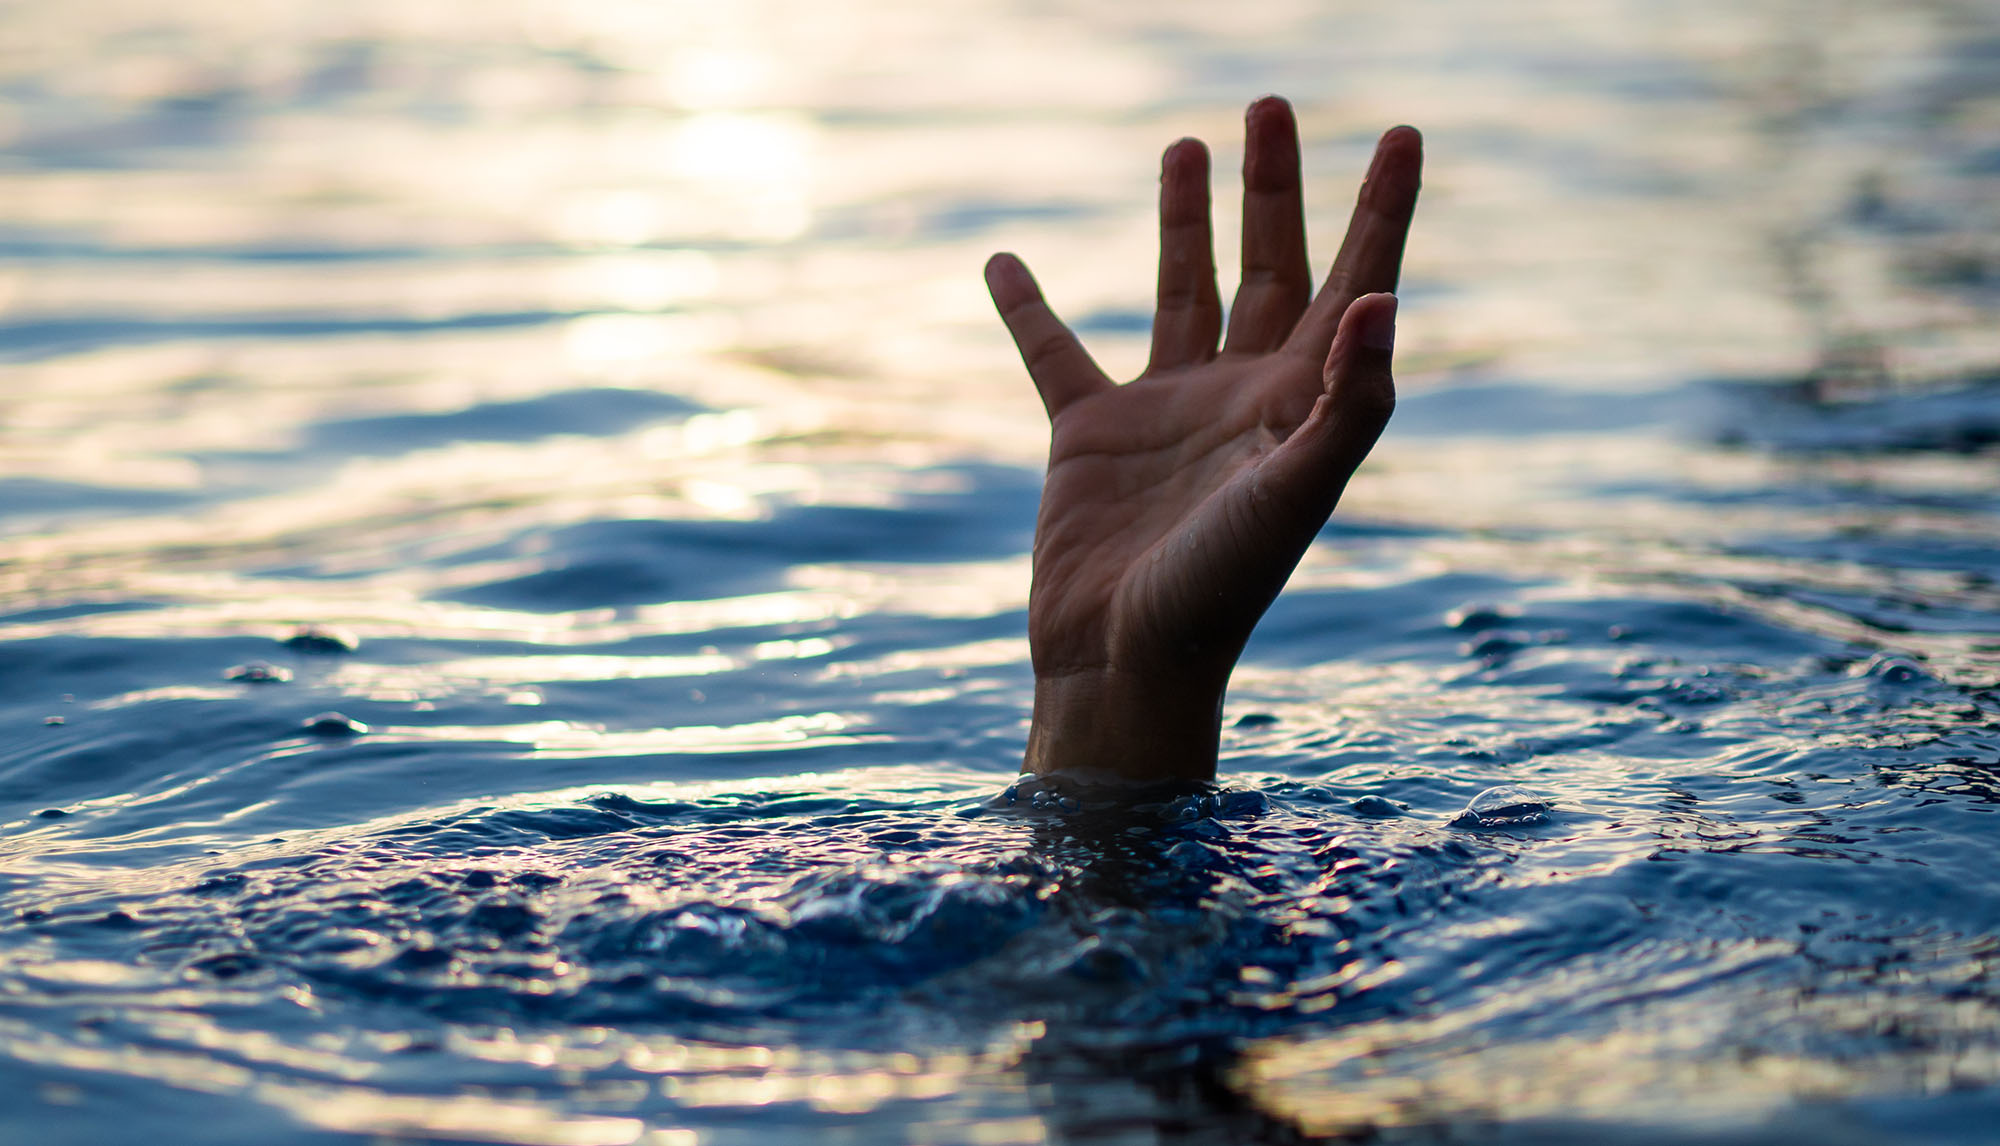 drowning victim accidental death accident injury solicitors Aberdeen